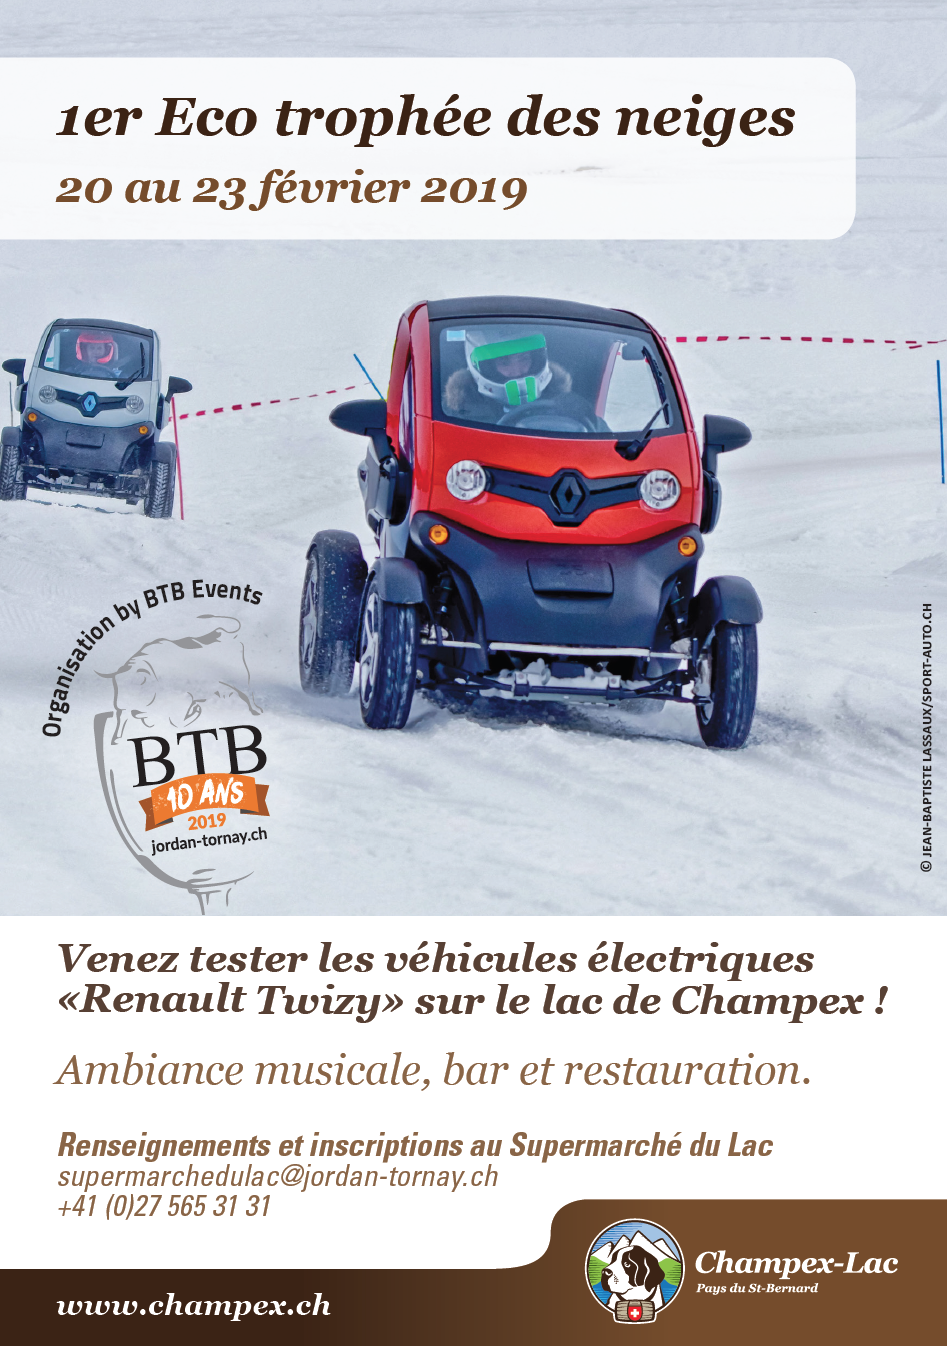 https://www.champex.ch/fr/agenda/item/6619-6619-1er-eco-trophee-des-neiges